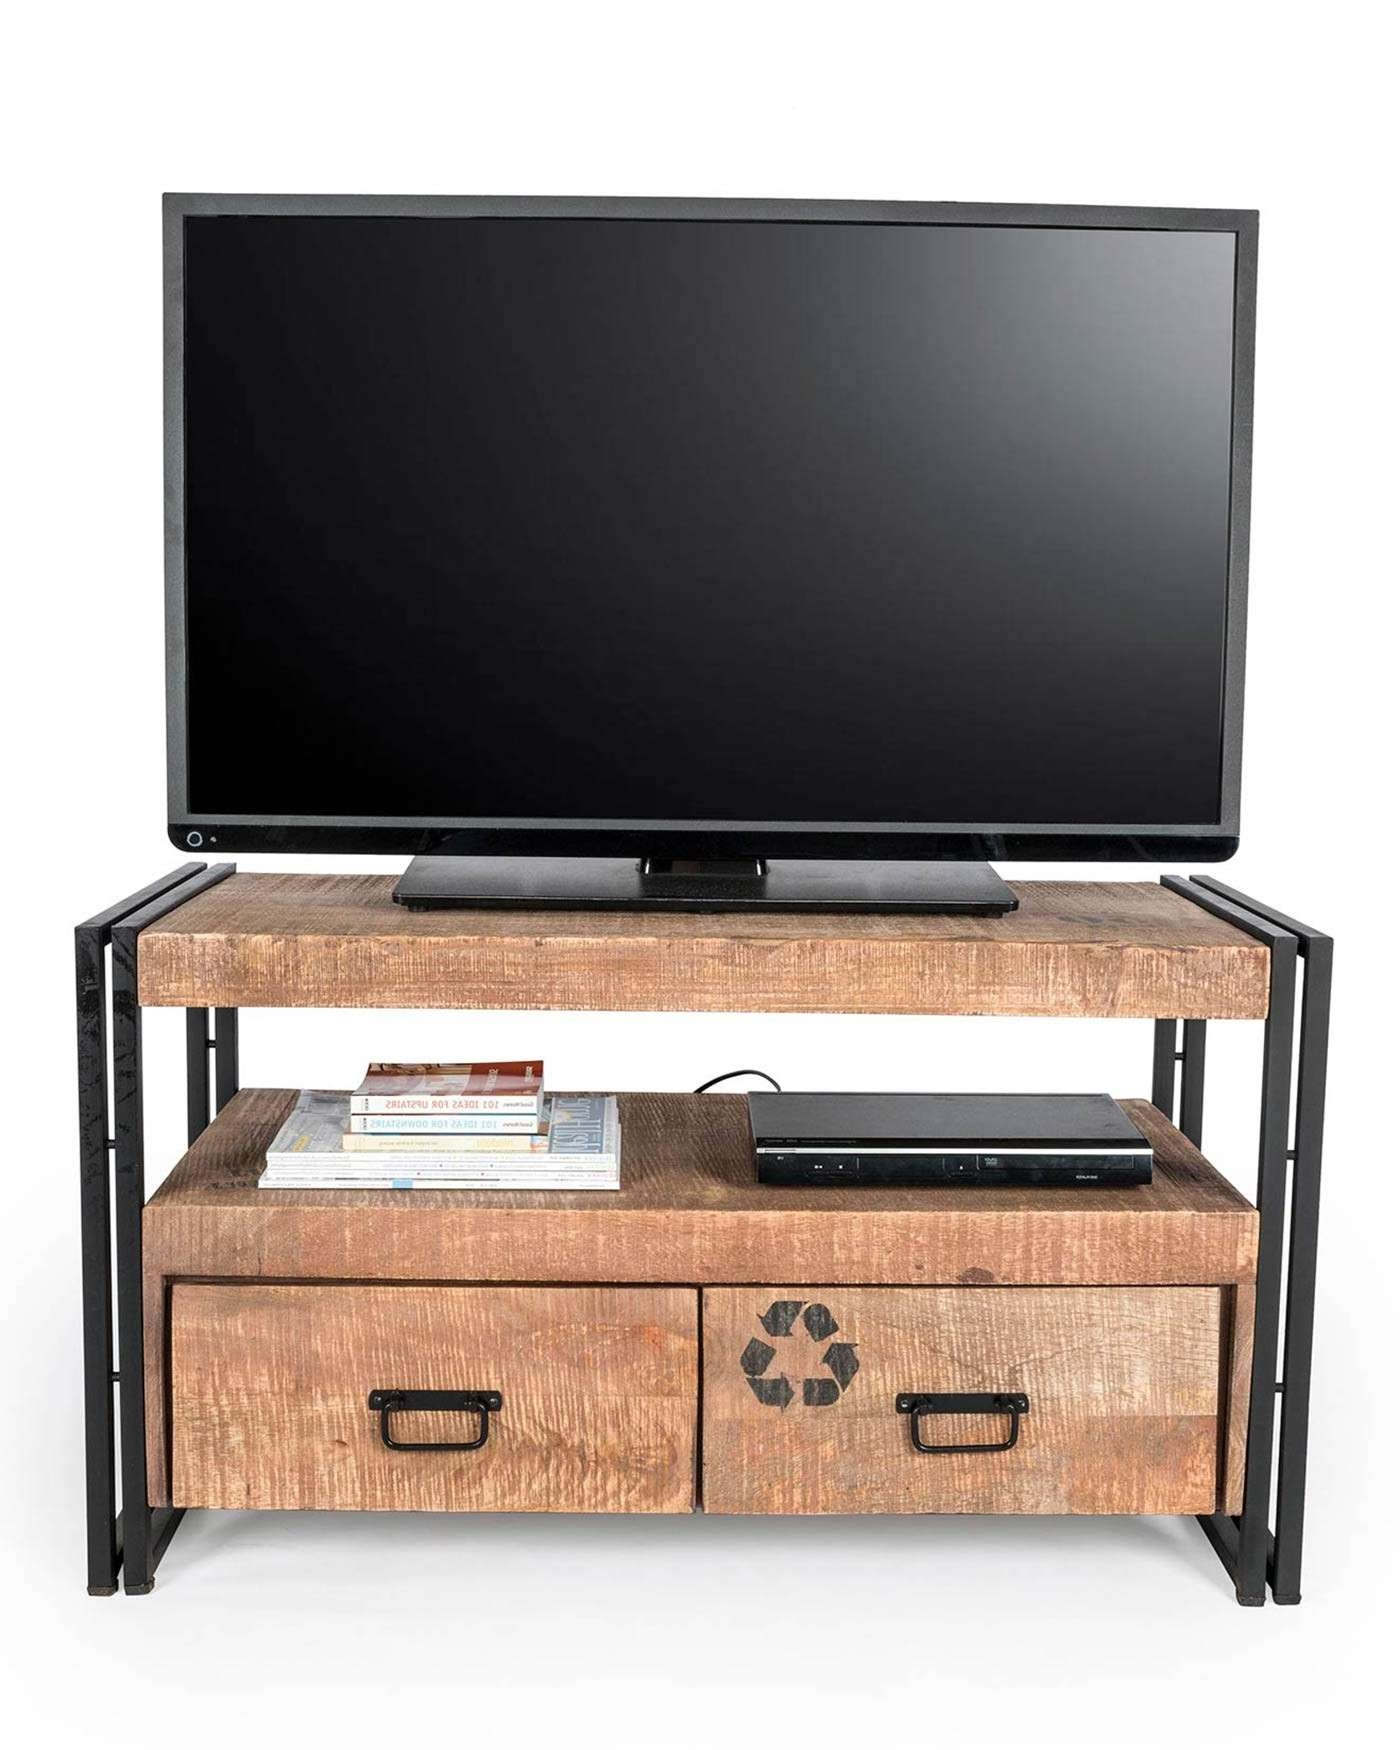 Reclaimed Wood Tv Stand Industrial Furniture Range – Homescapes For Industrial Tv Stands (View 14 of 15)